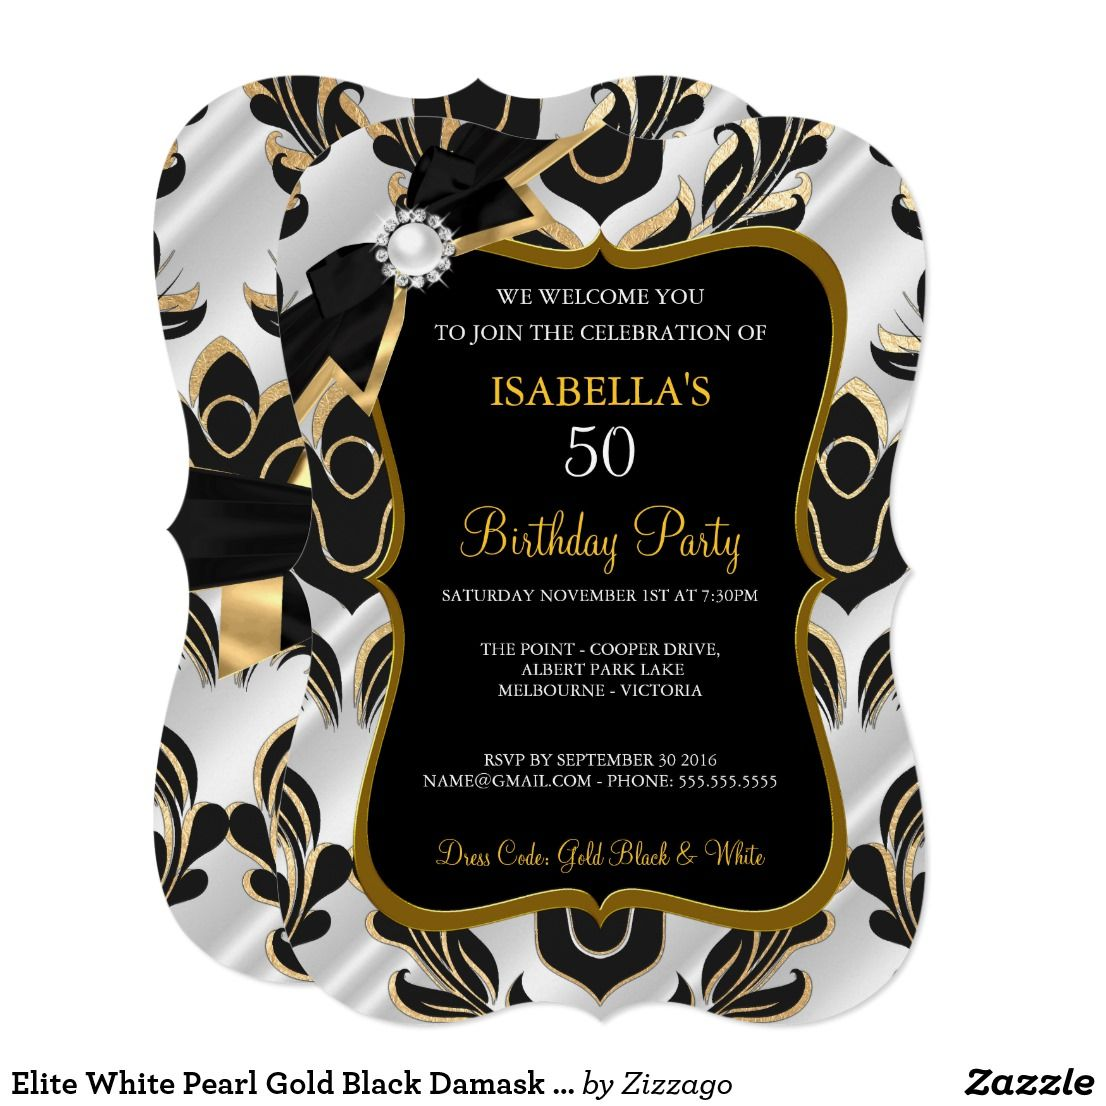 Elite White Pearl Gold Black Damask Party Invite | Zazzle.com | Damask party,  Pearl white, Girl birthday party invitations